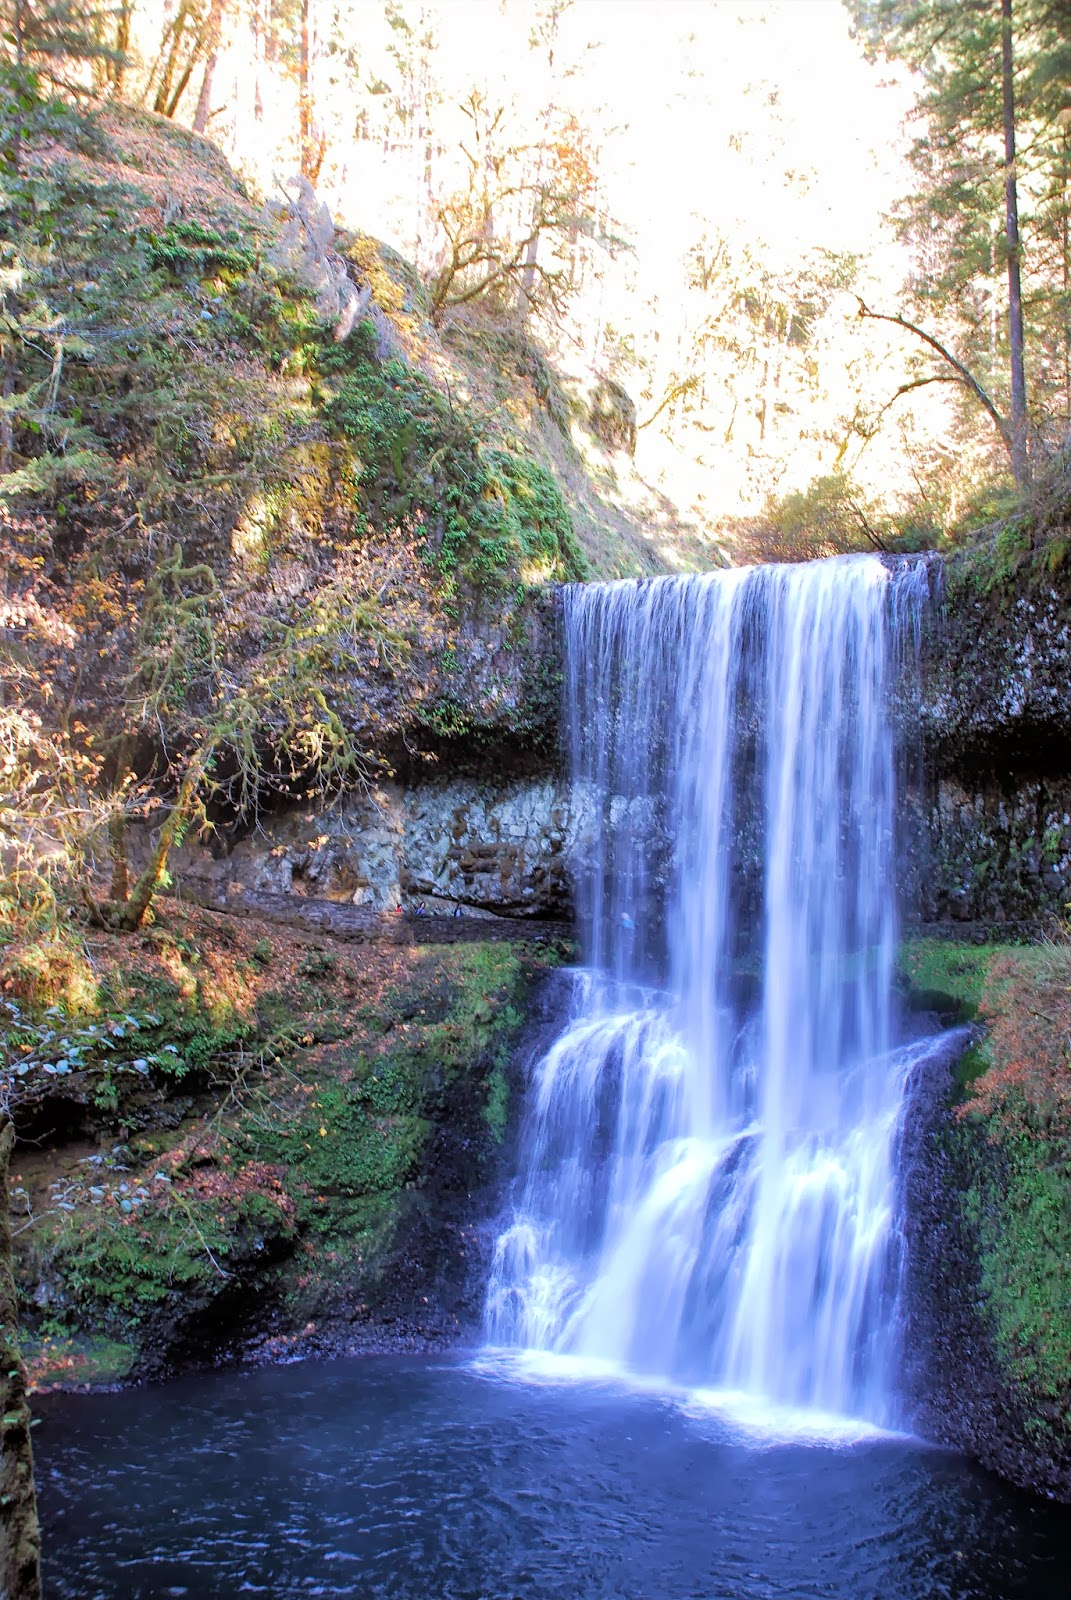 how to get to cliff falls maple ridge